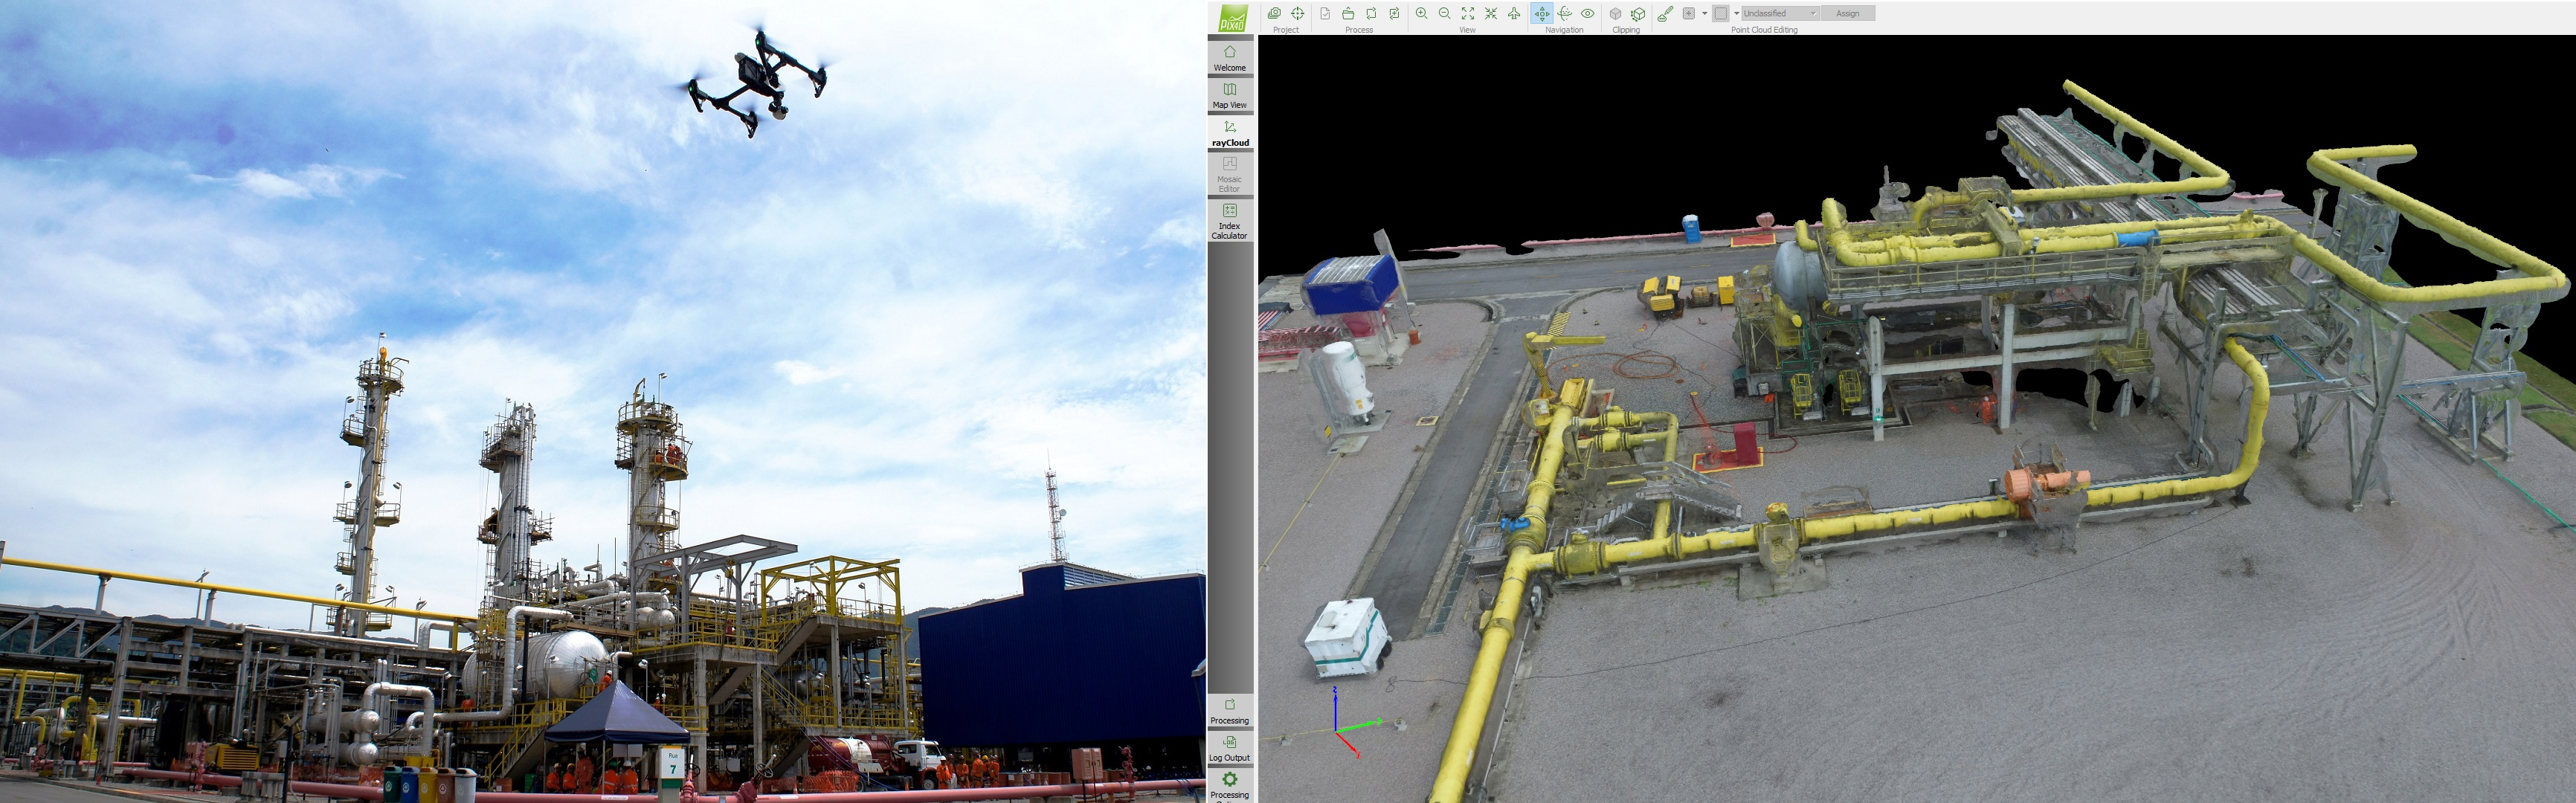 Drone flying above an oil plant, and a screenshot of the resulting 3D model.